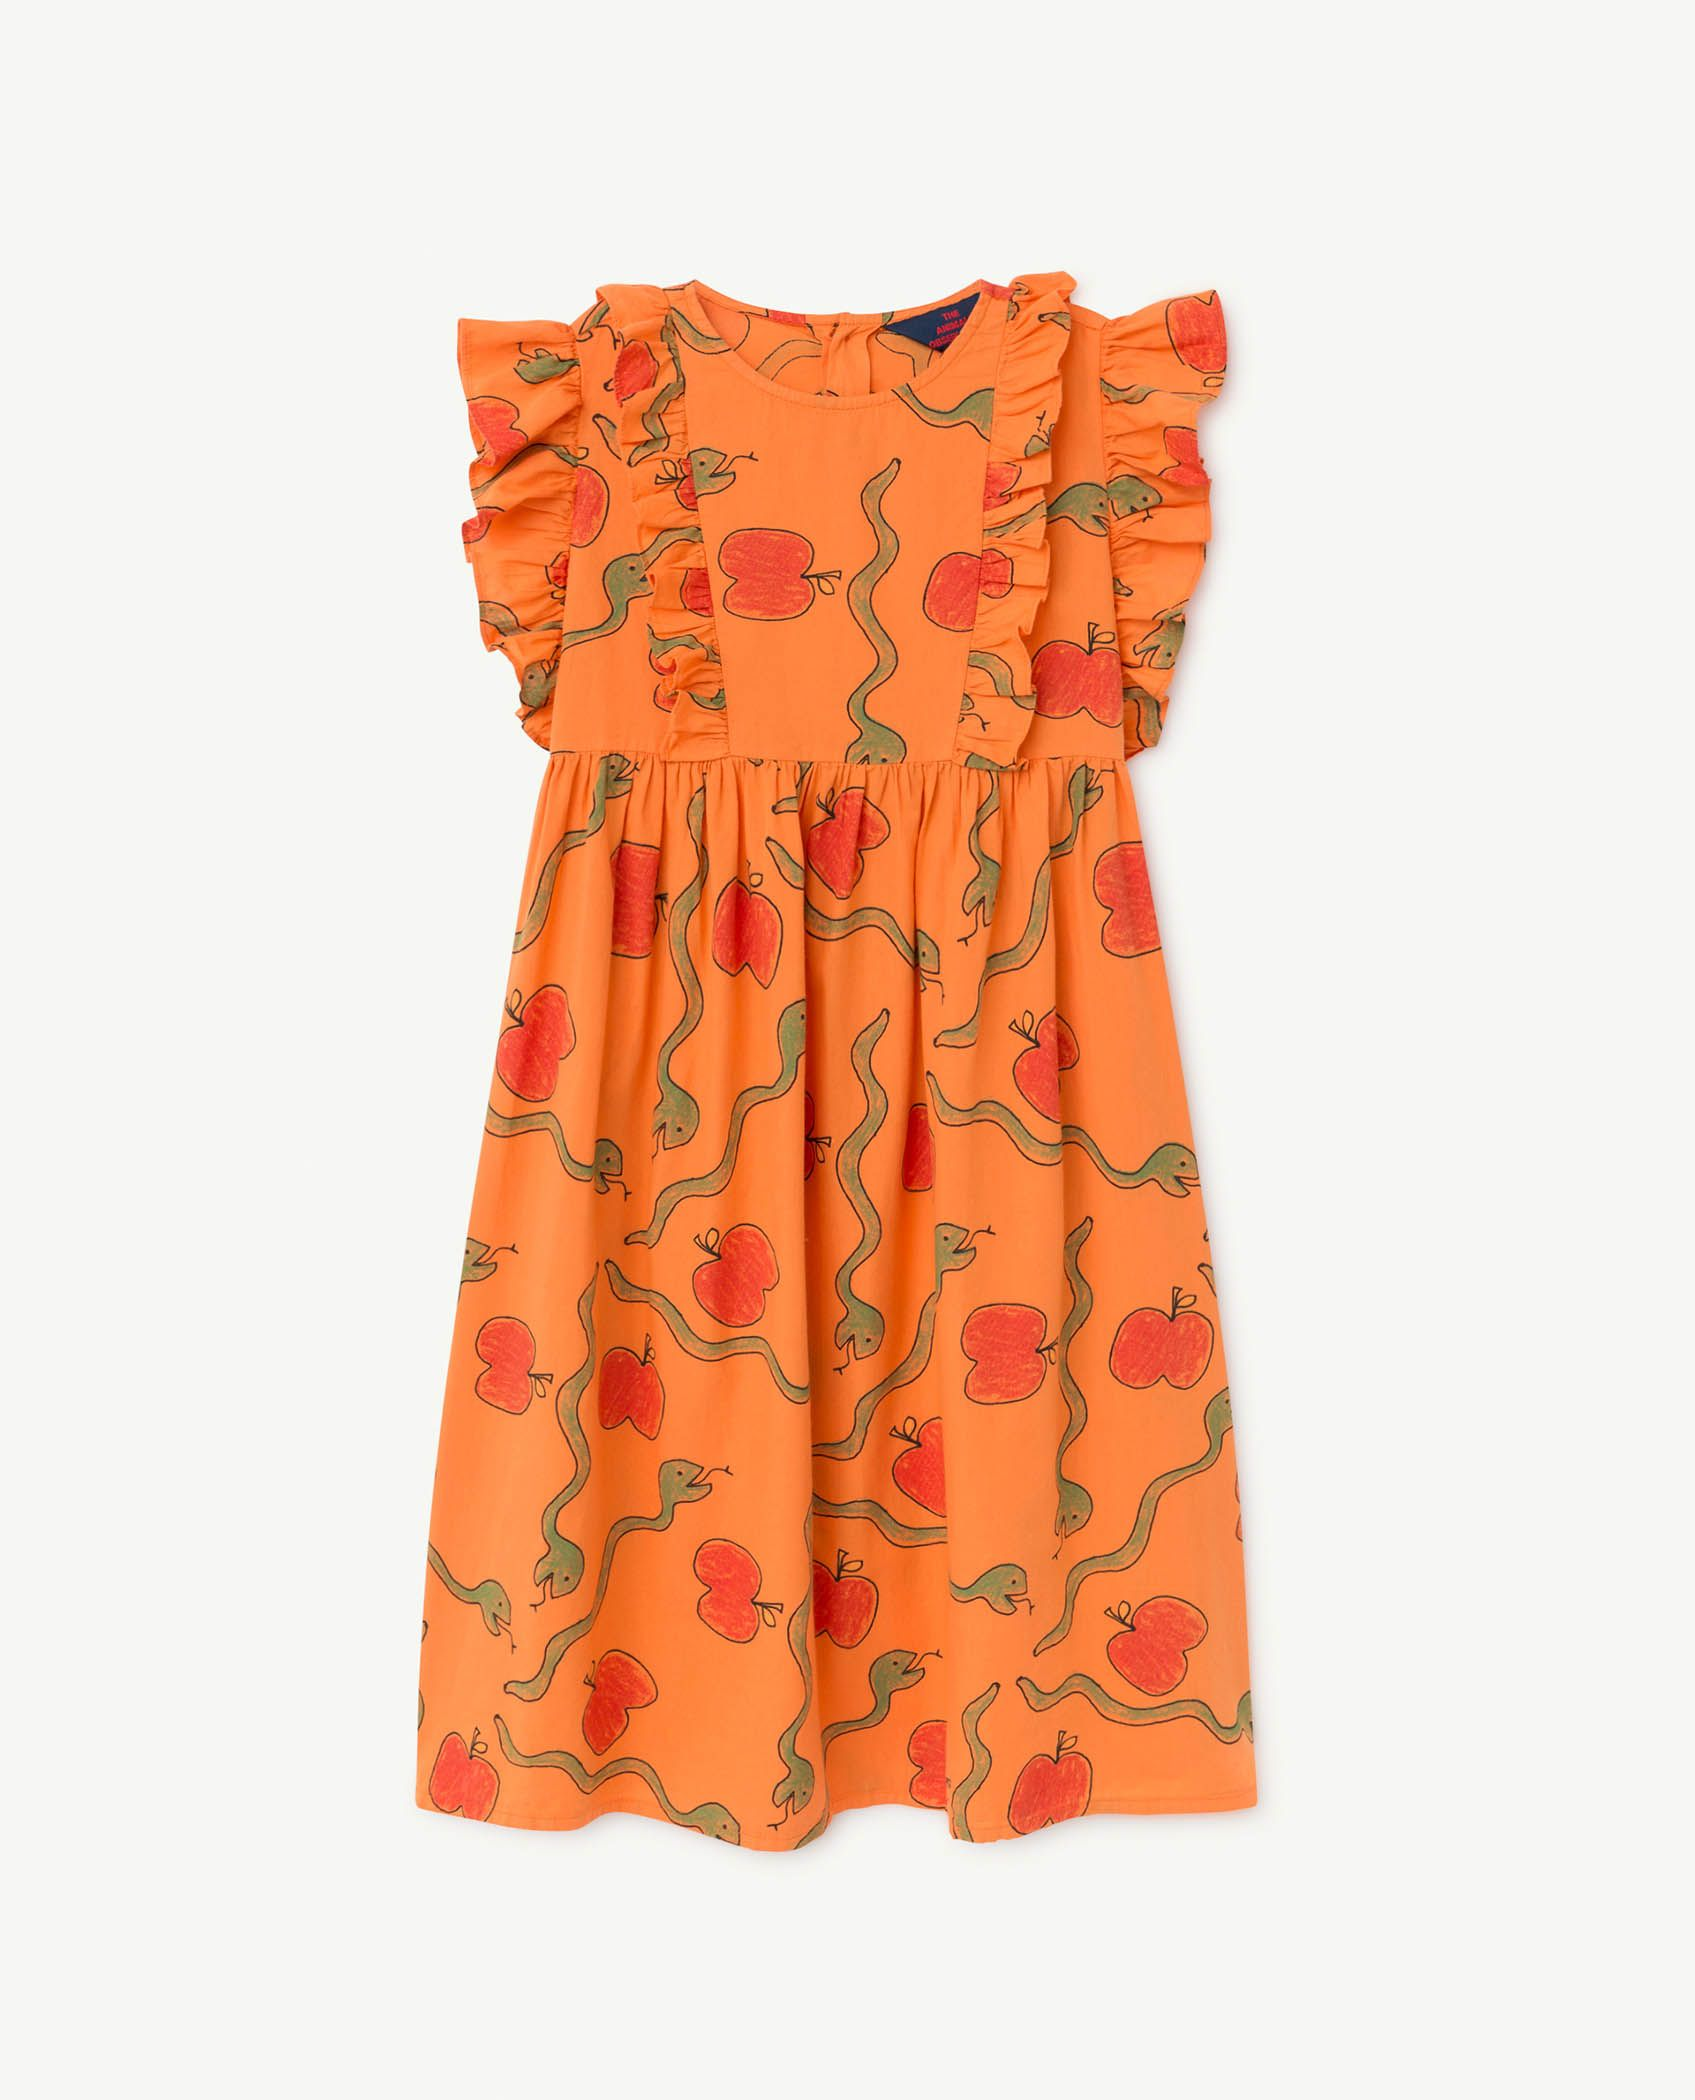 Apples and Snakes Otter Dress img-1